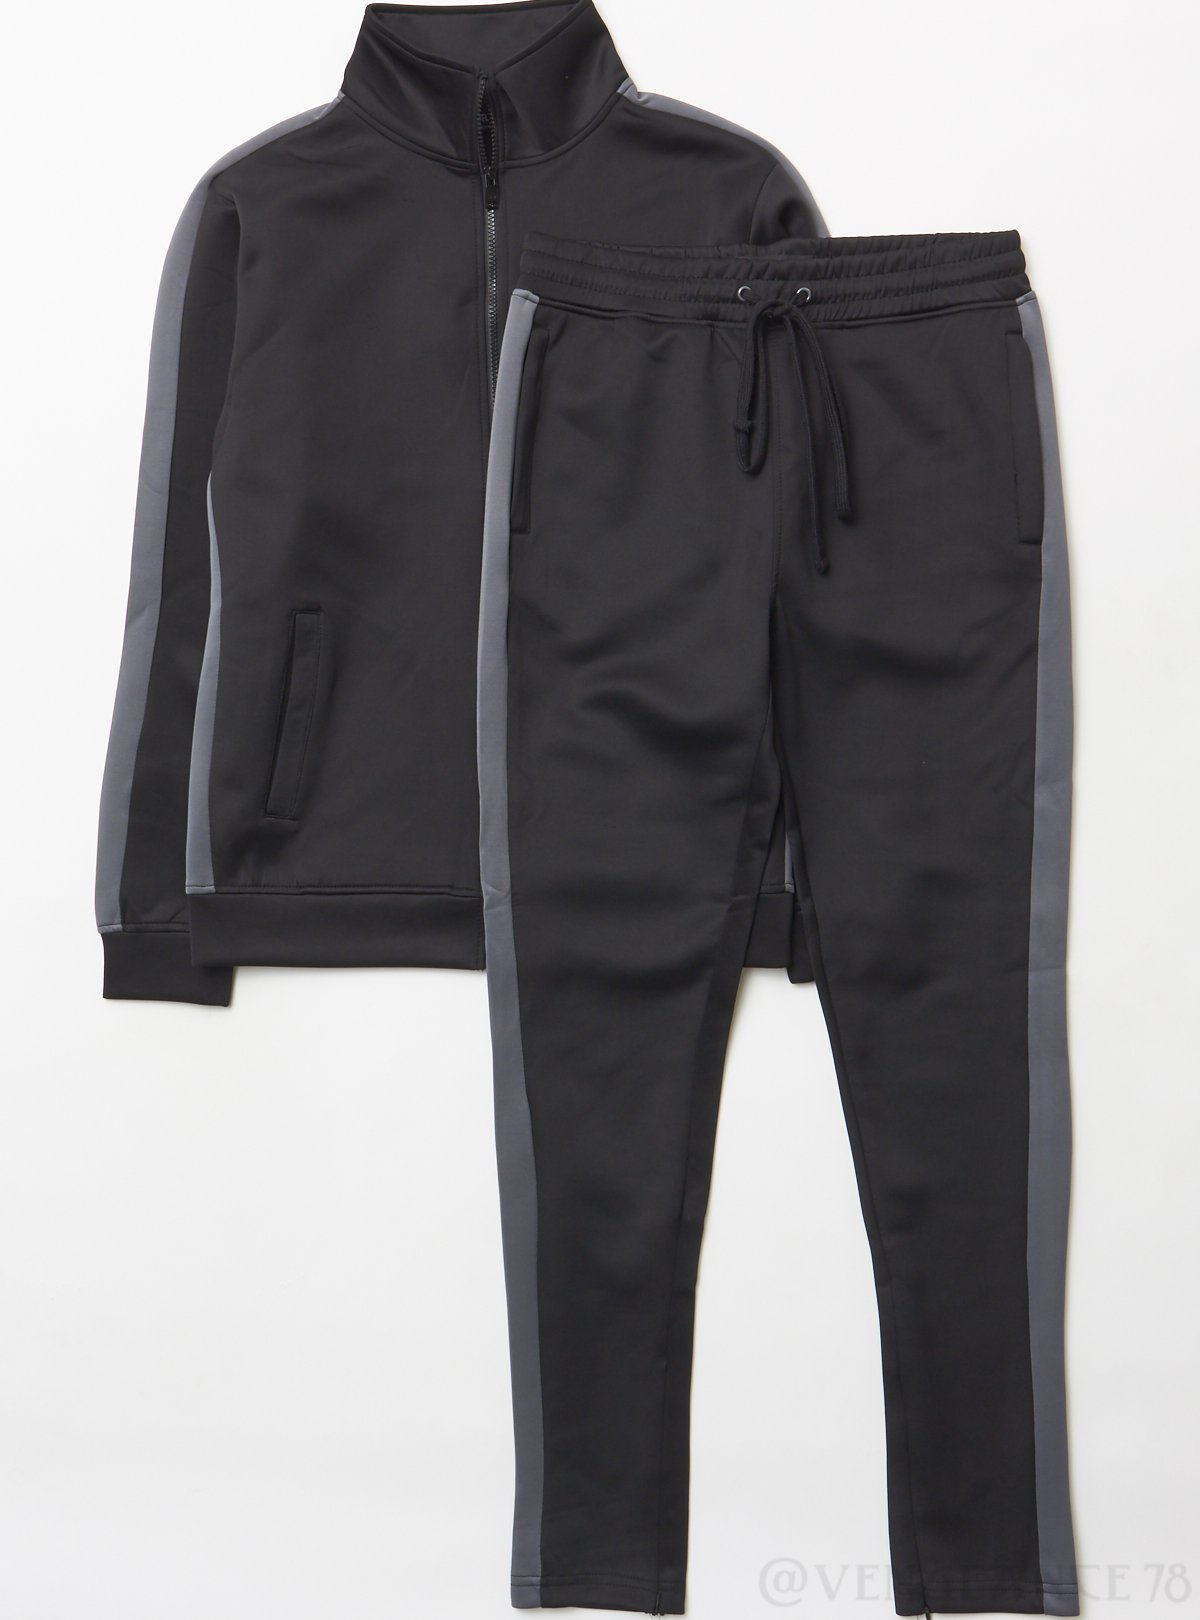 Rebel Minds Track Suit - Black And Charcoal - 100-501